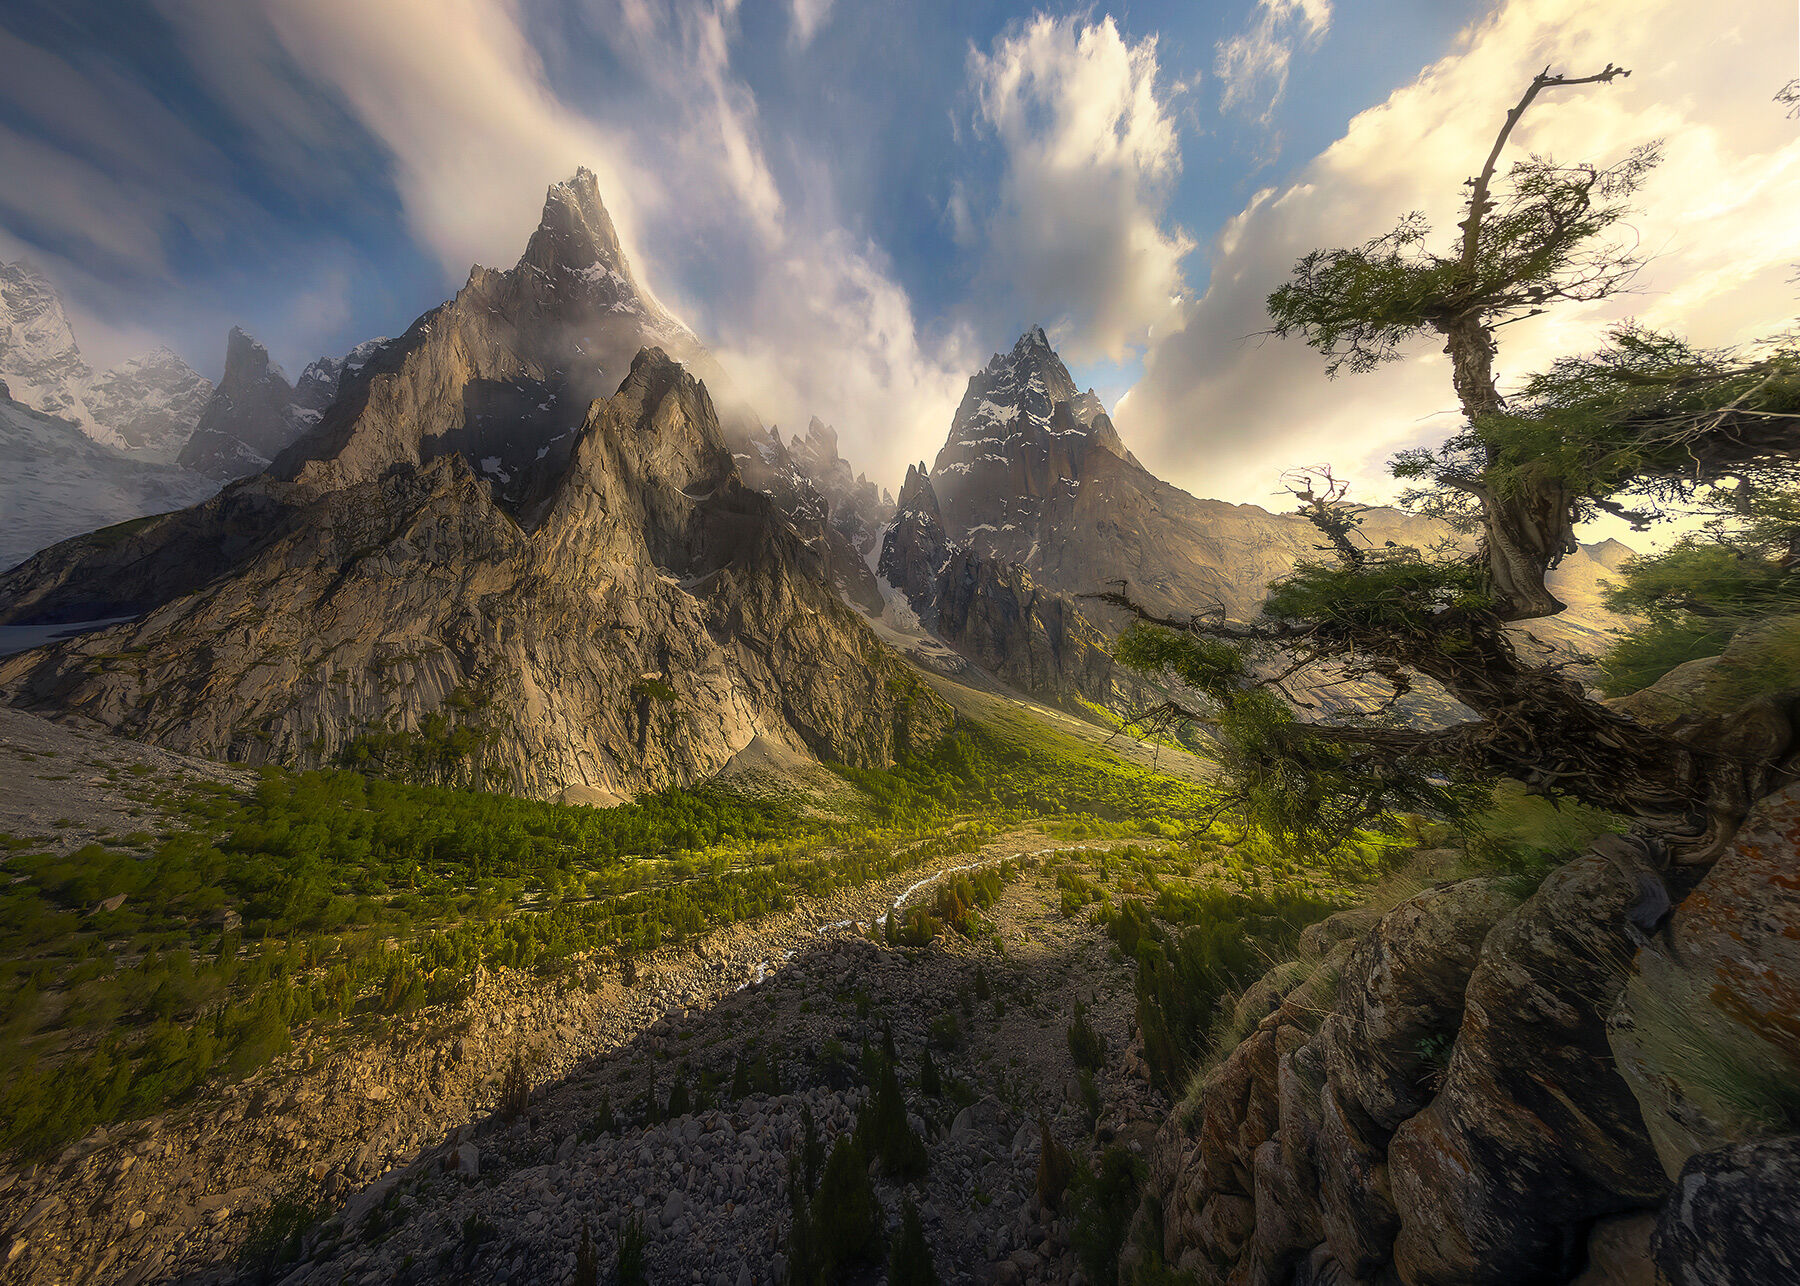 A gnarled, wind-shaped tree hangs on to the edge of a cliff overlooking some of the largest and most impressive peaks I have...